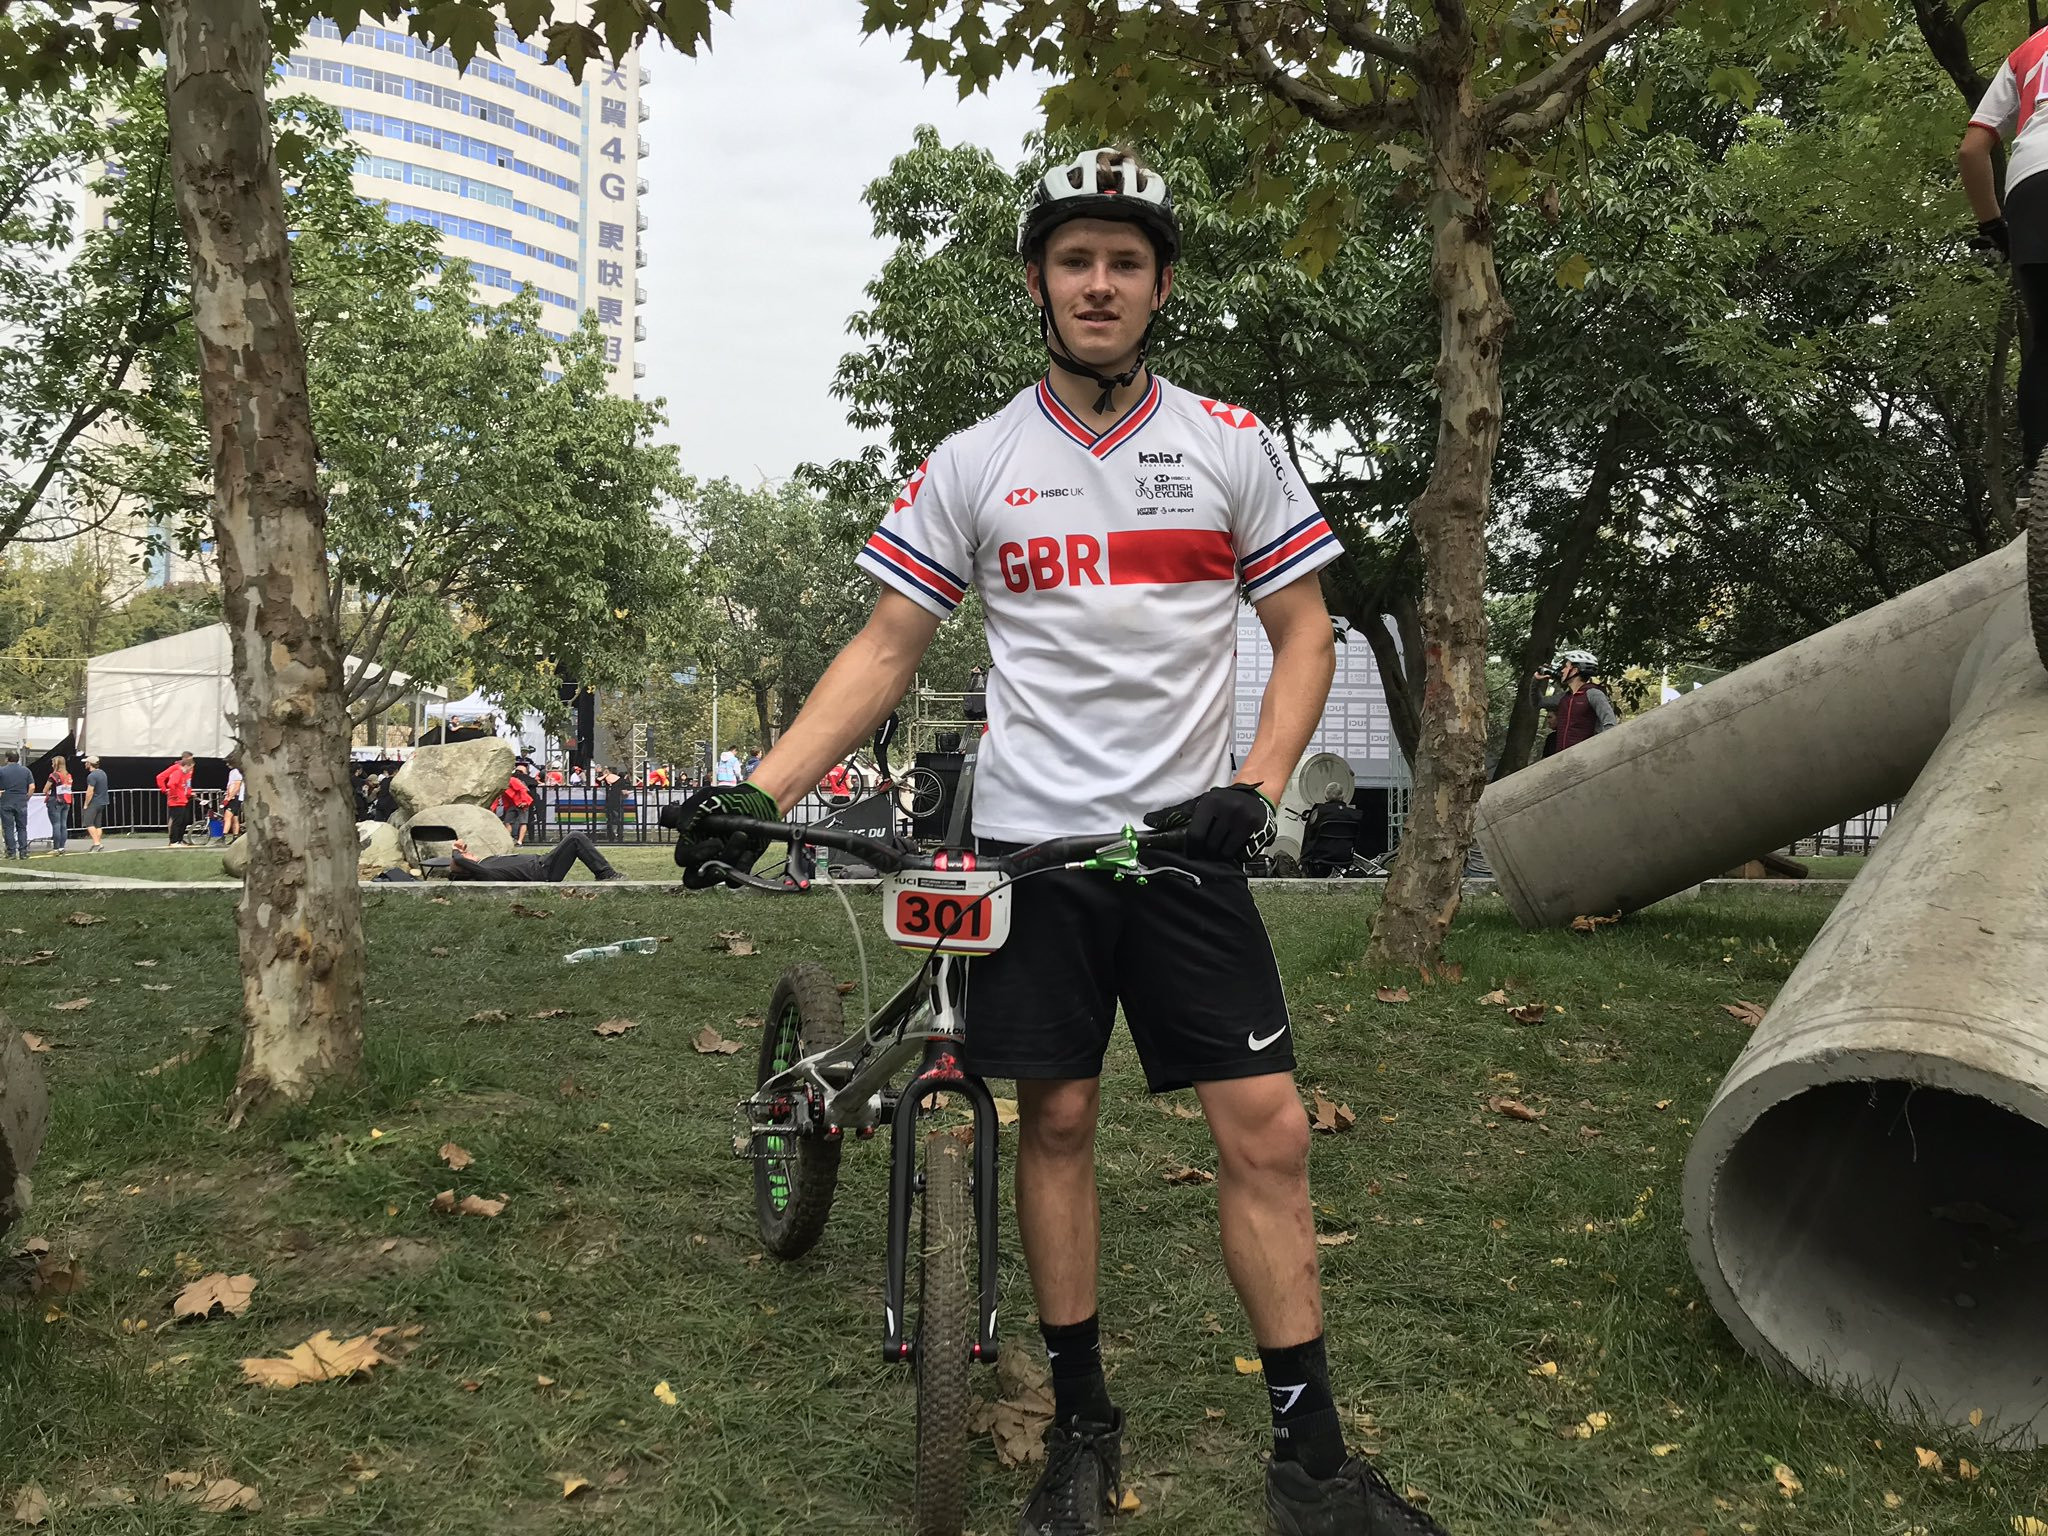 """Britain's Charlie Rolls scored 850 points out of 900 available to reach the men's junior 20"""" final at the UCI Urban Cycling World Championships in Chengdu ©UCI"""